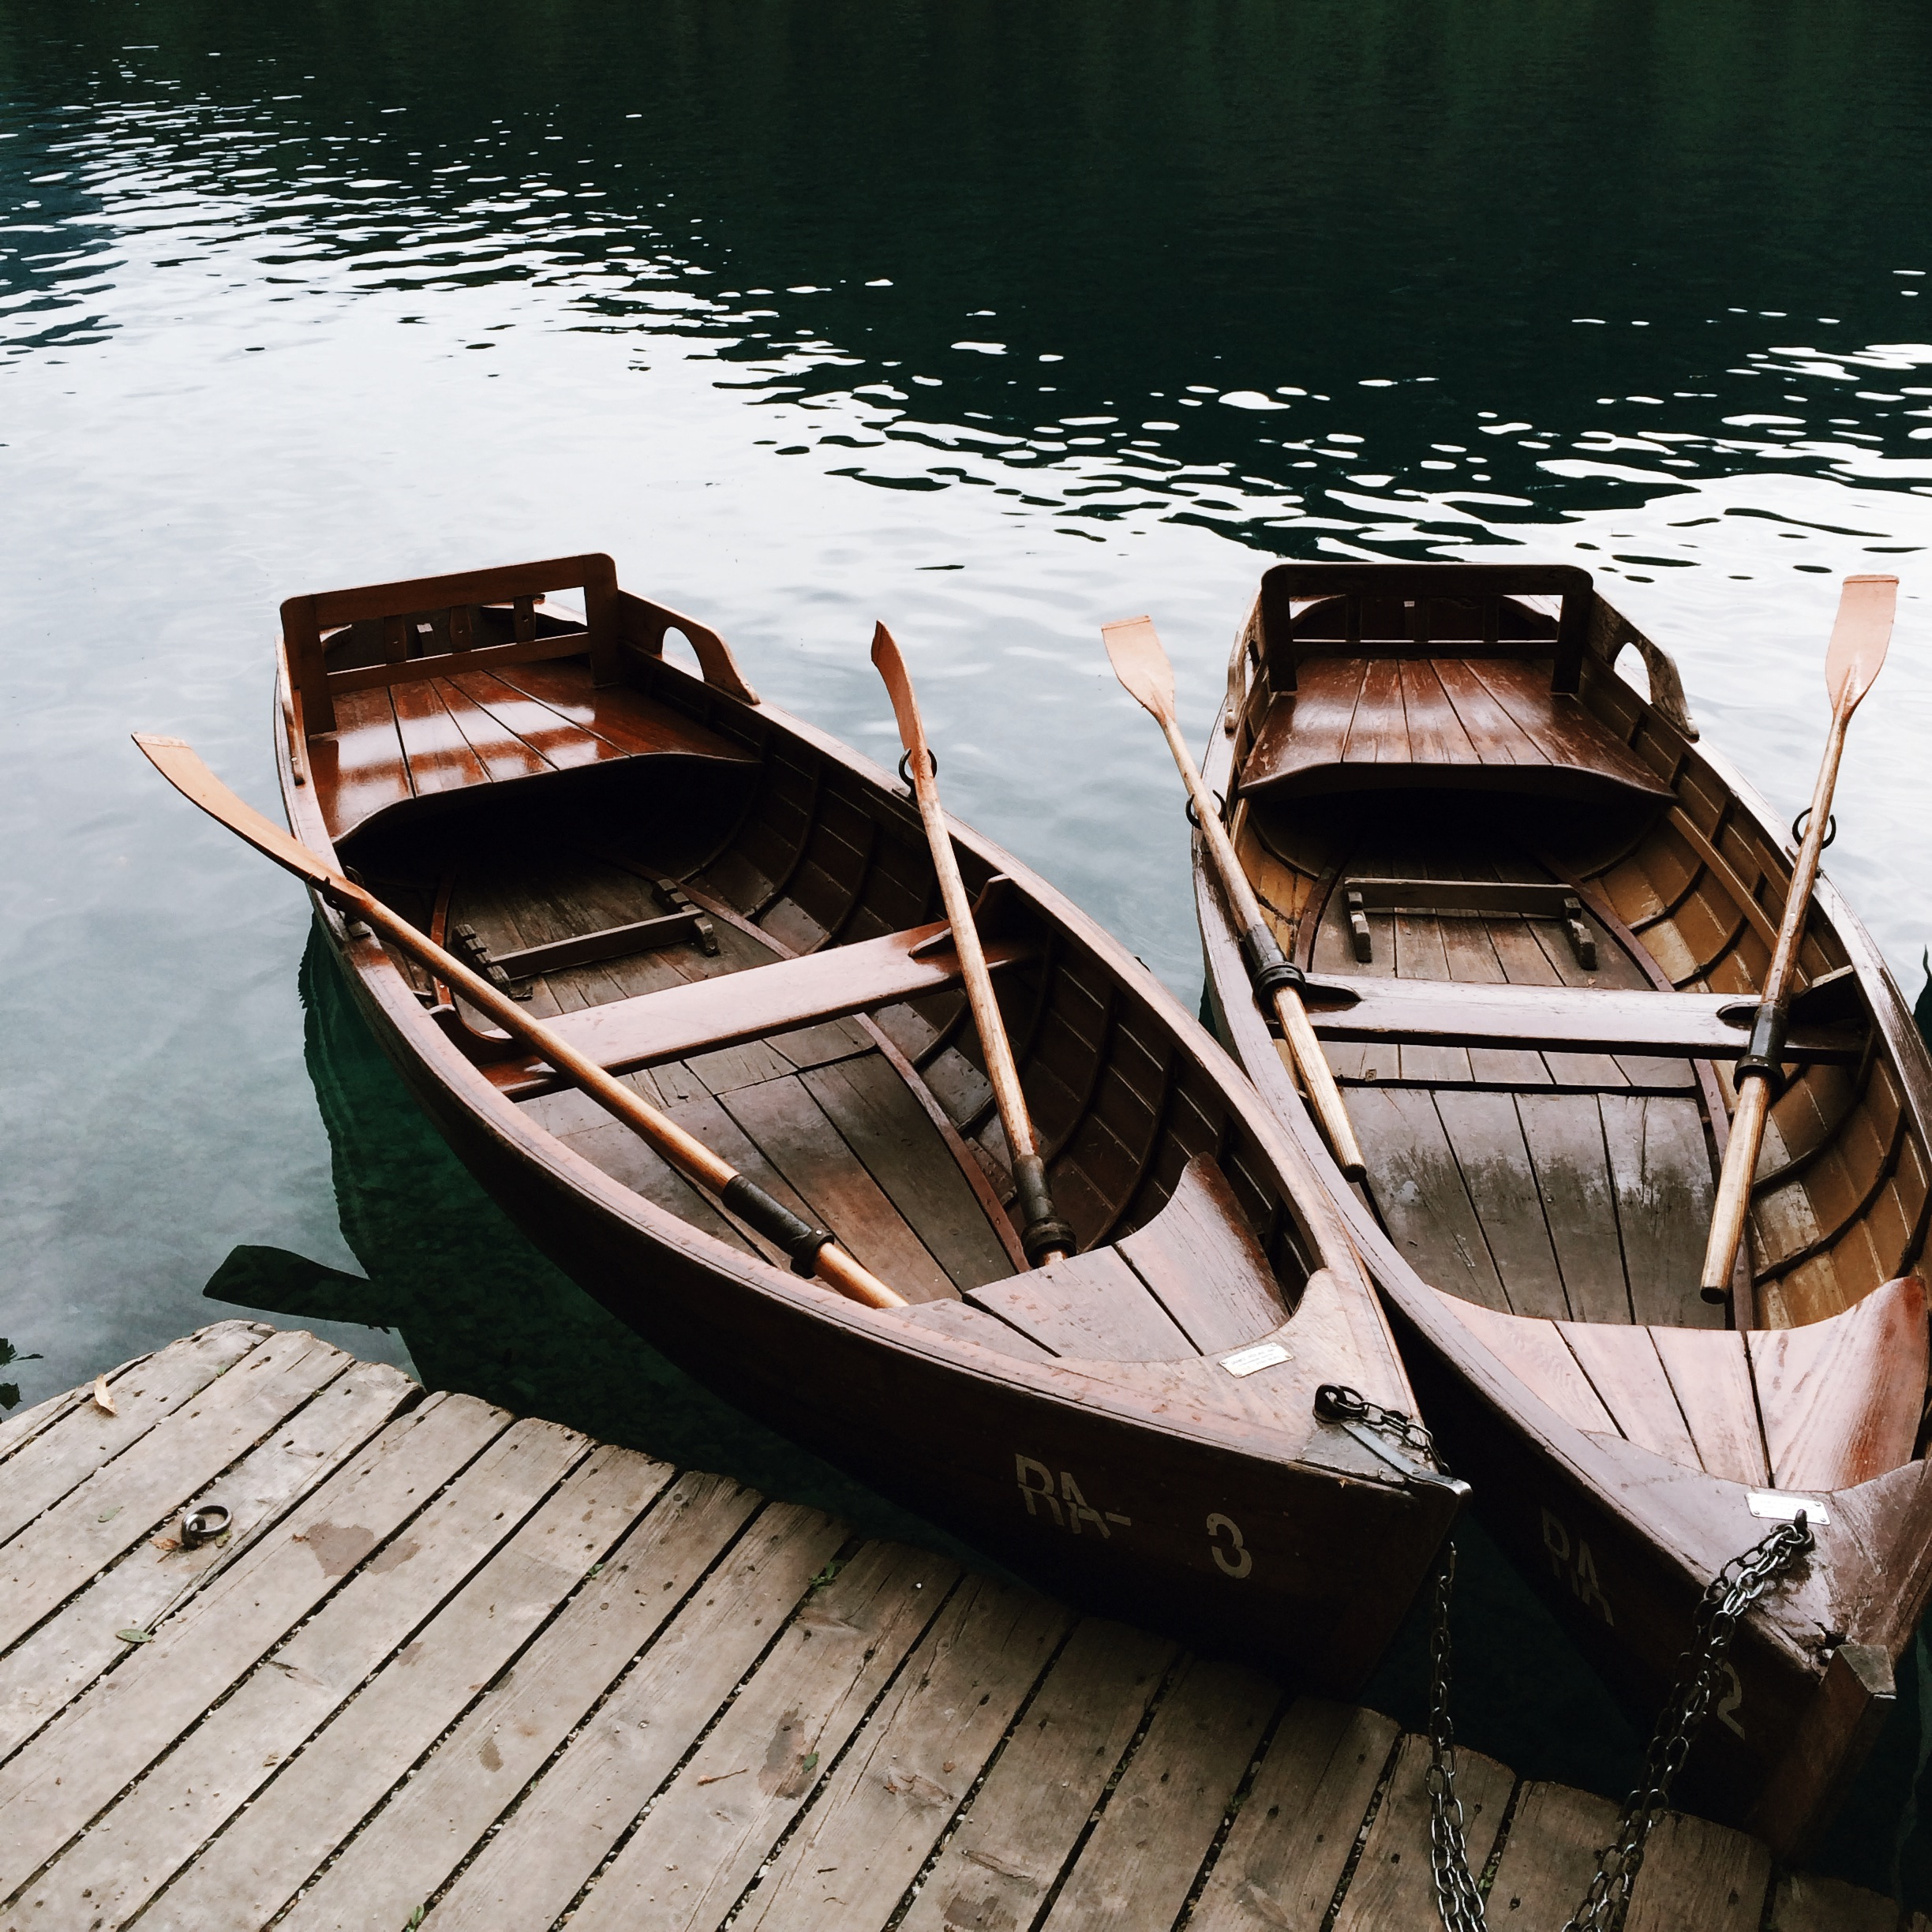 Renting rowboats in Lake Bled, Slovenia